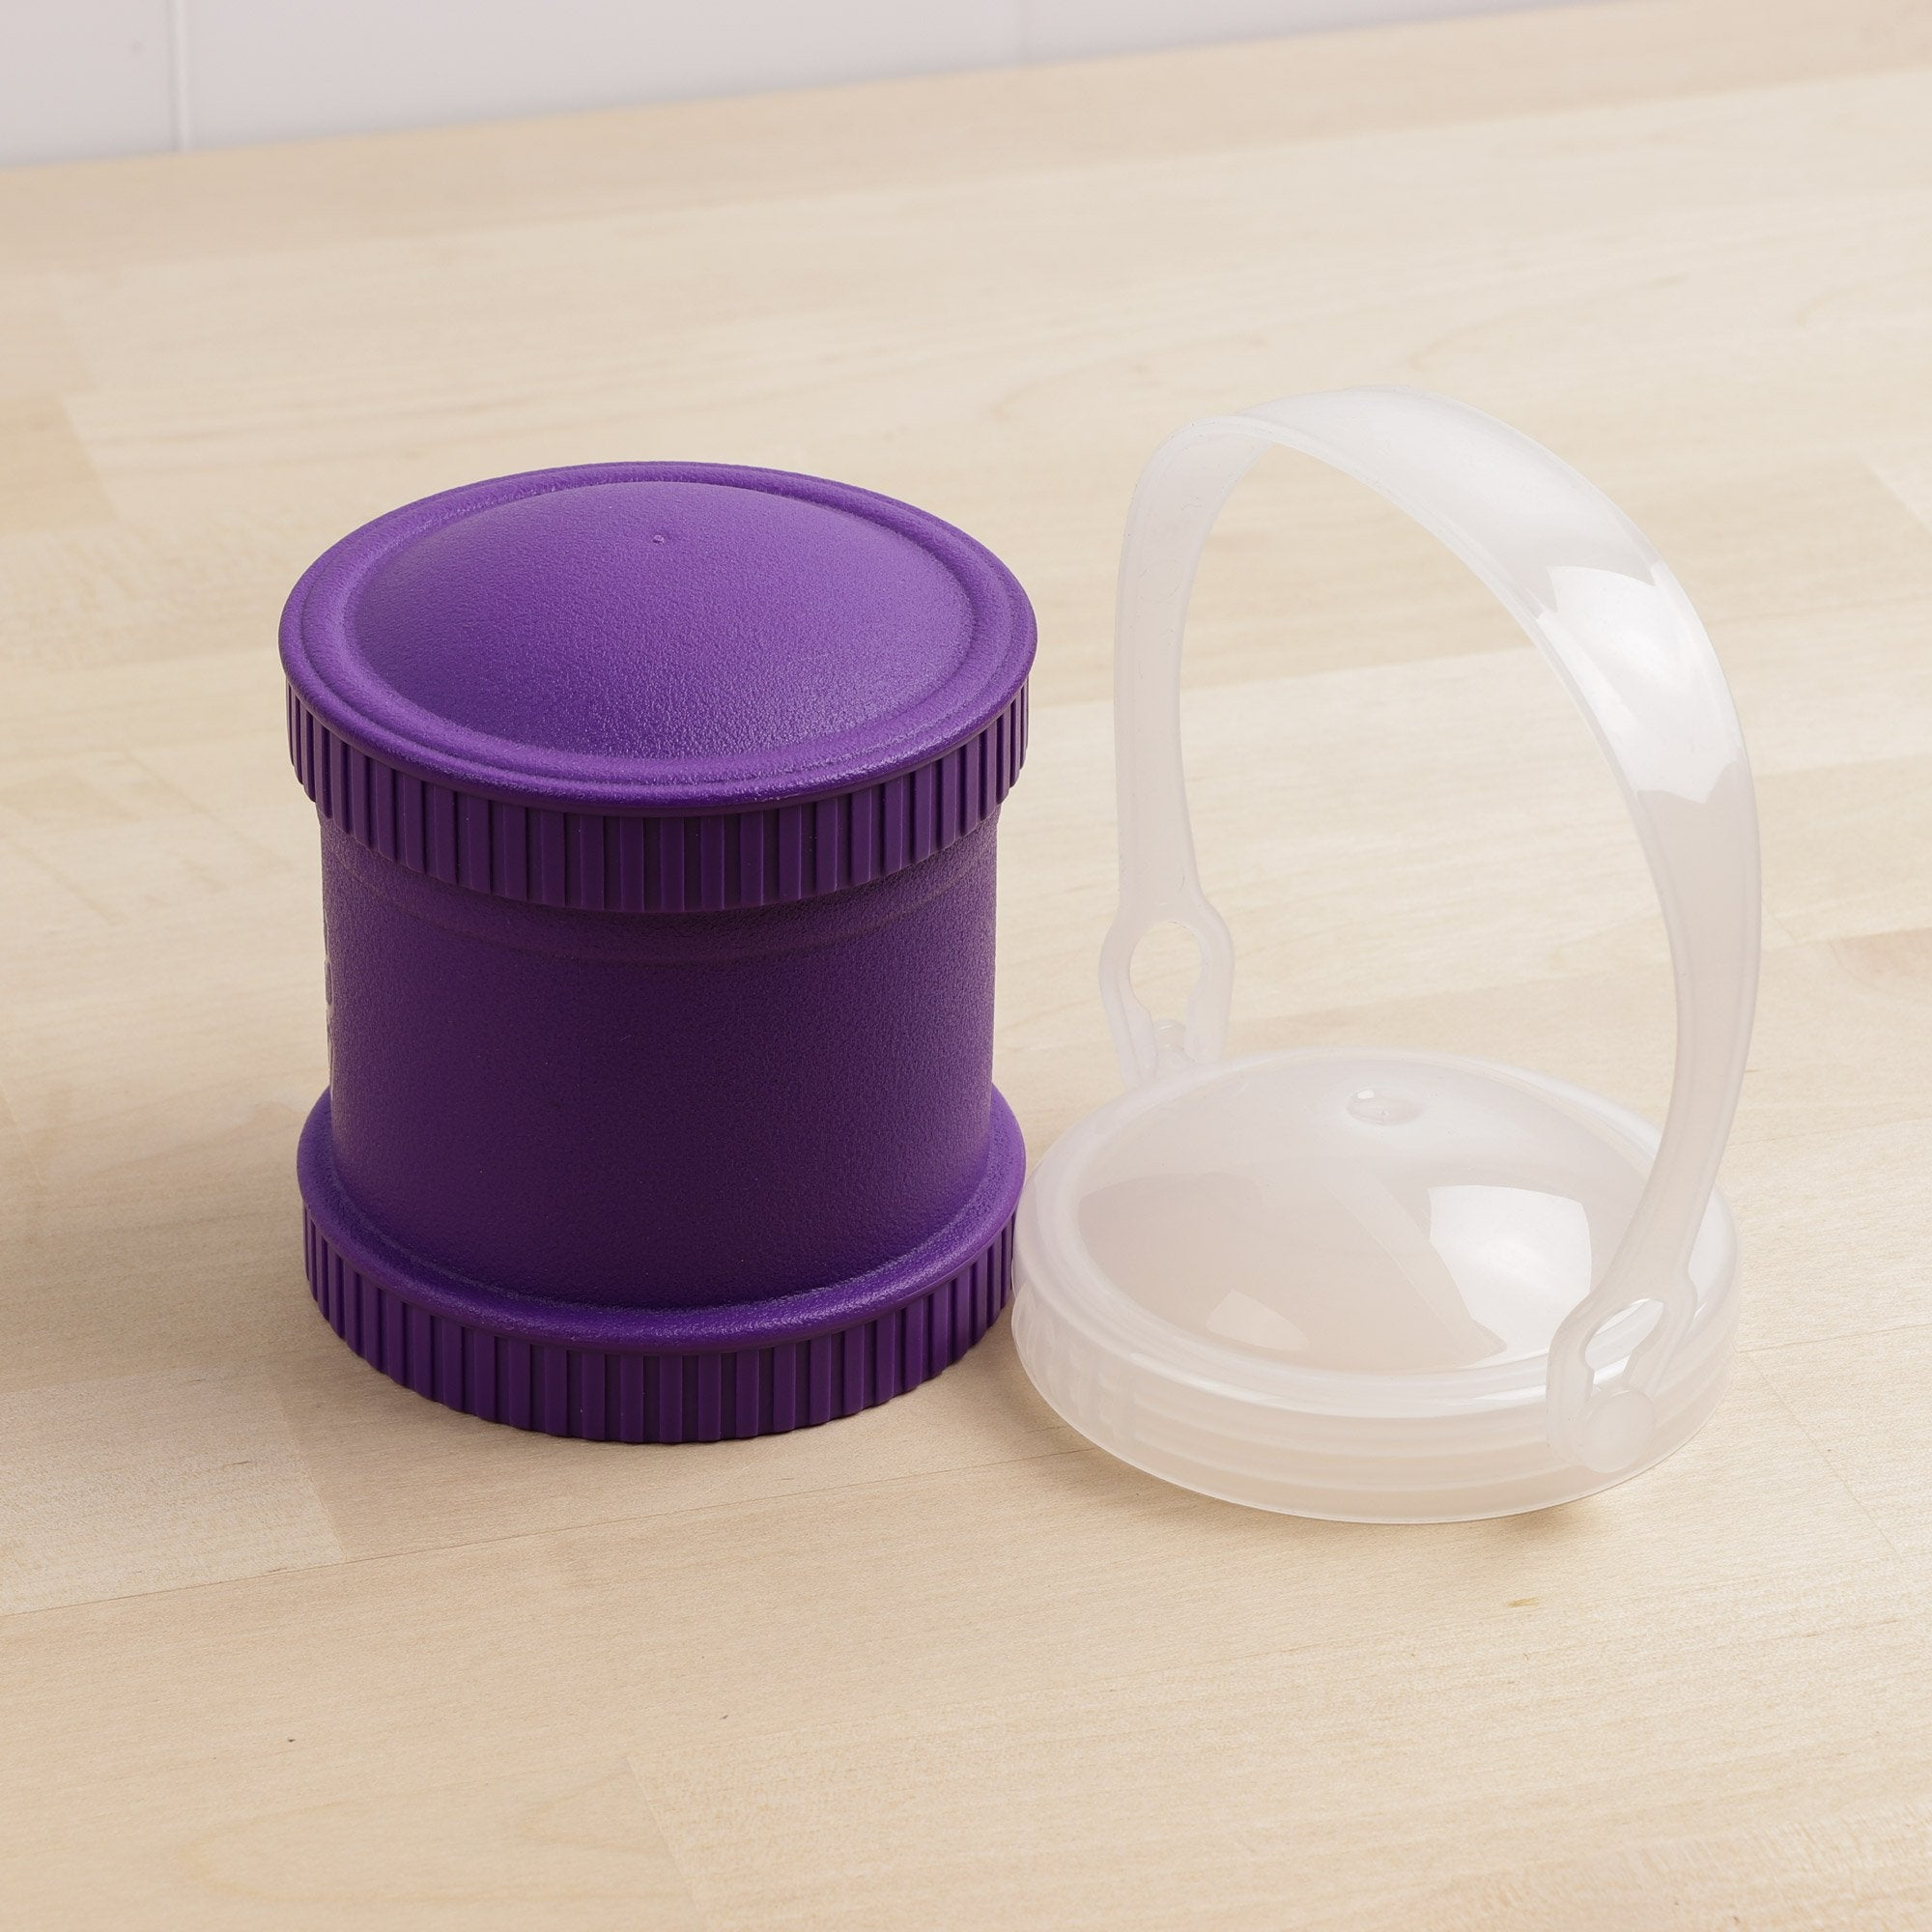 Replay Single Snack Stack with Dual Lid Set Replay Dinnerware Amethyst at Little Earth Nest Eco Shop